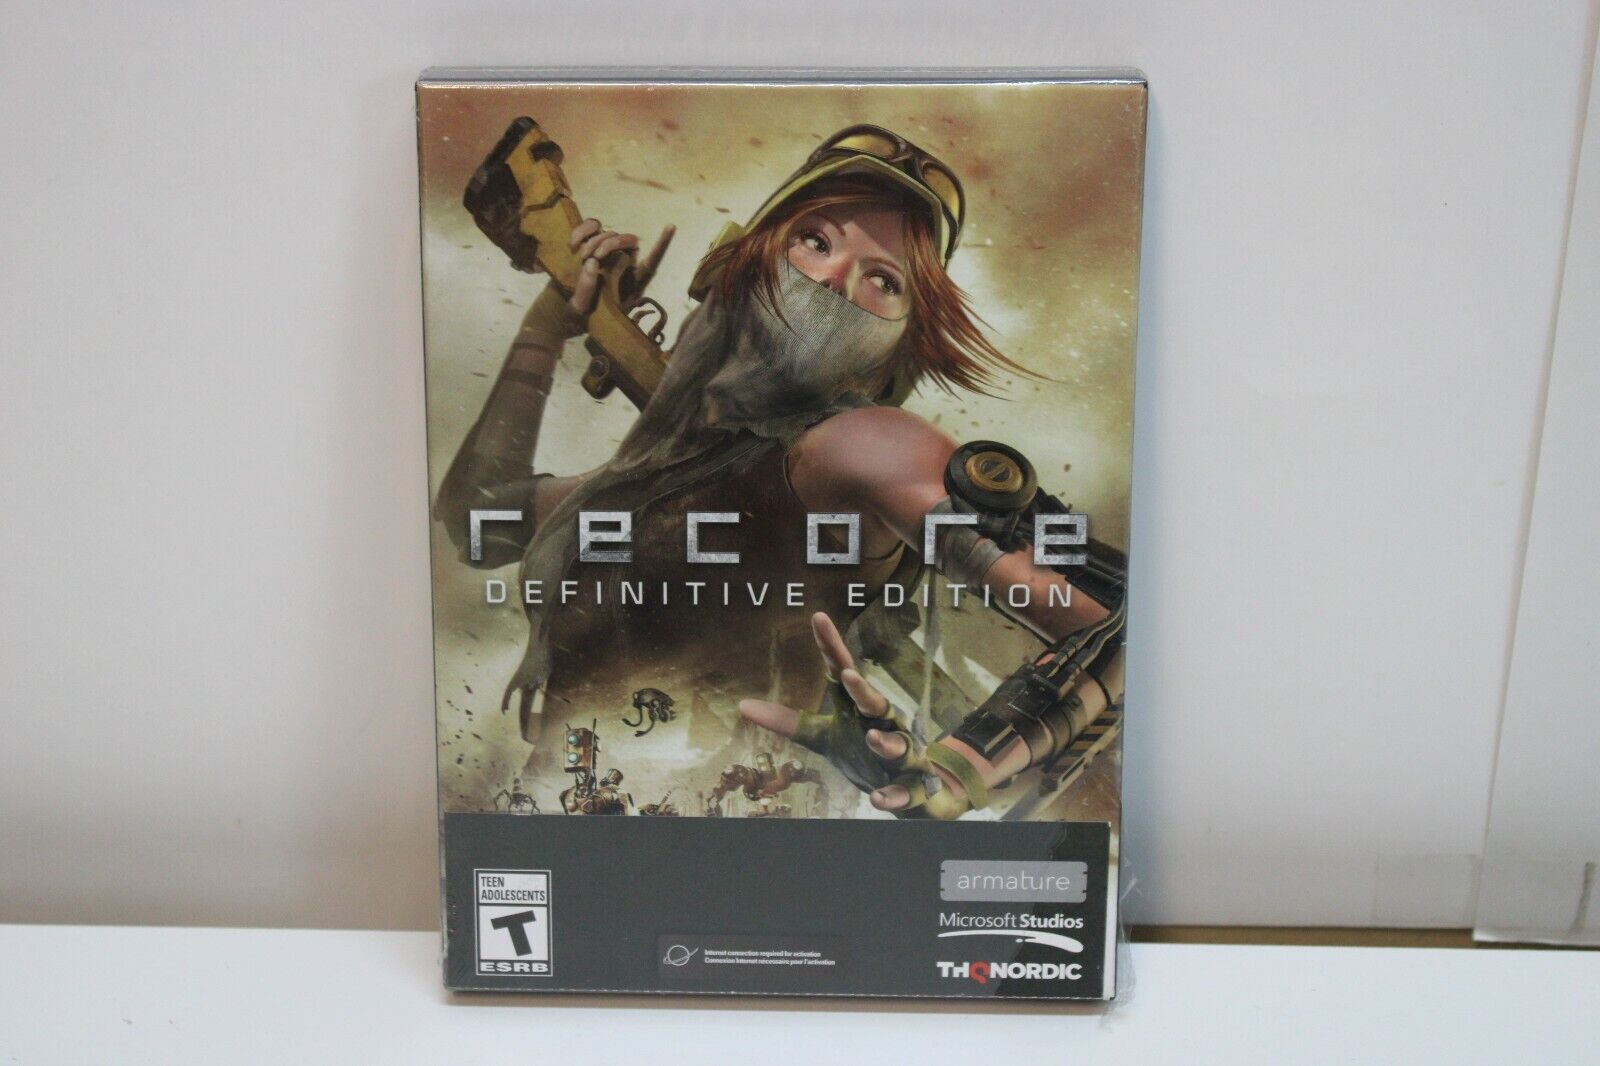 Computer Games - Recore Definitive Edition PC DVD-ROM Computer Game